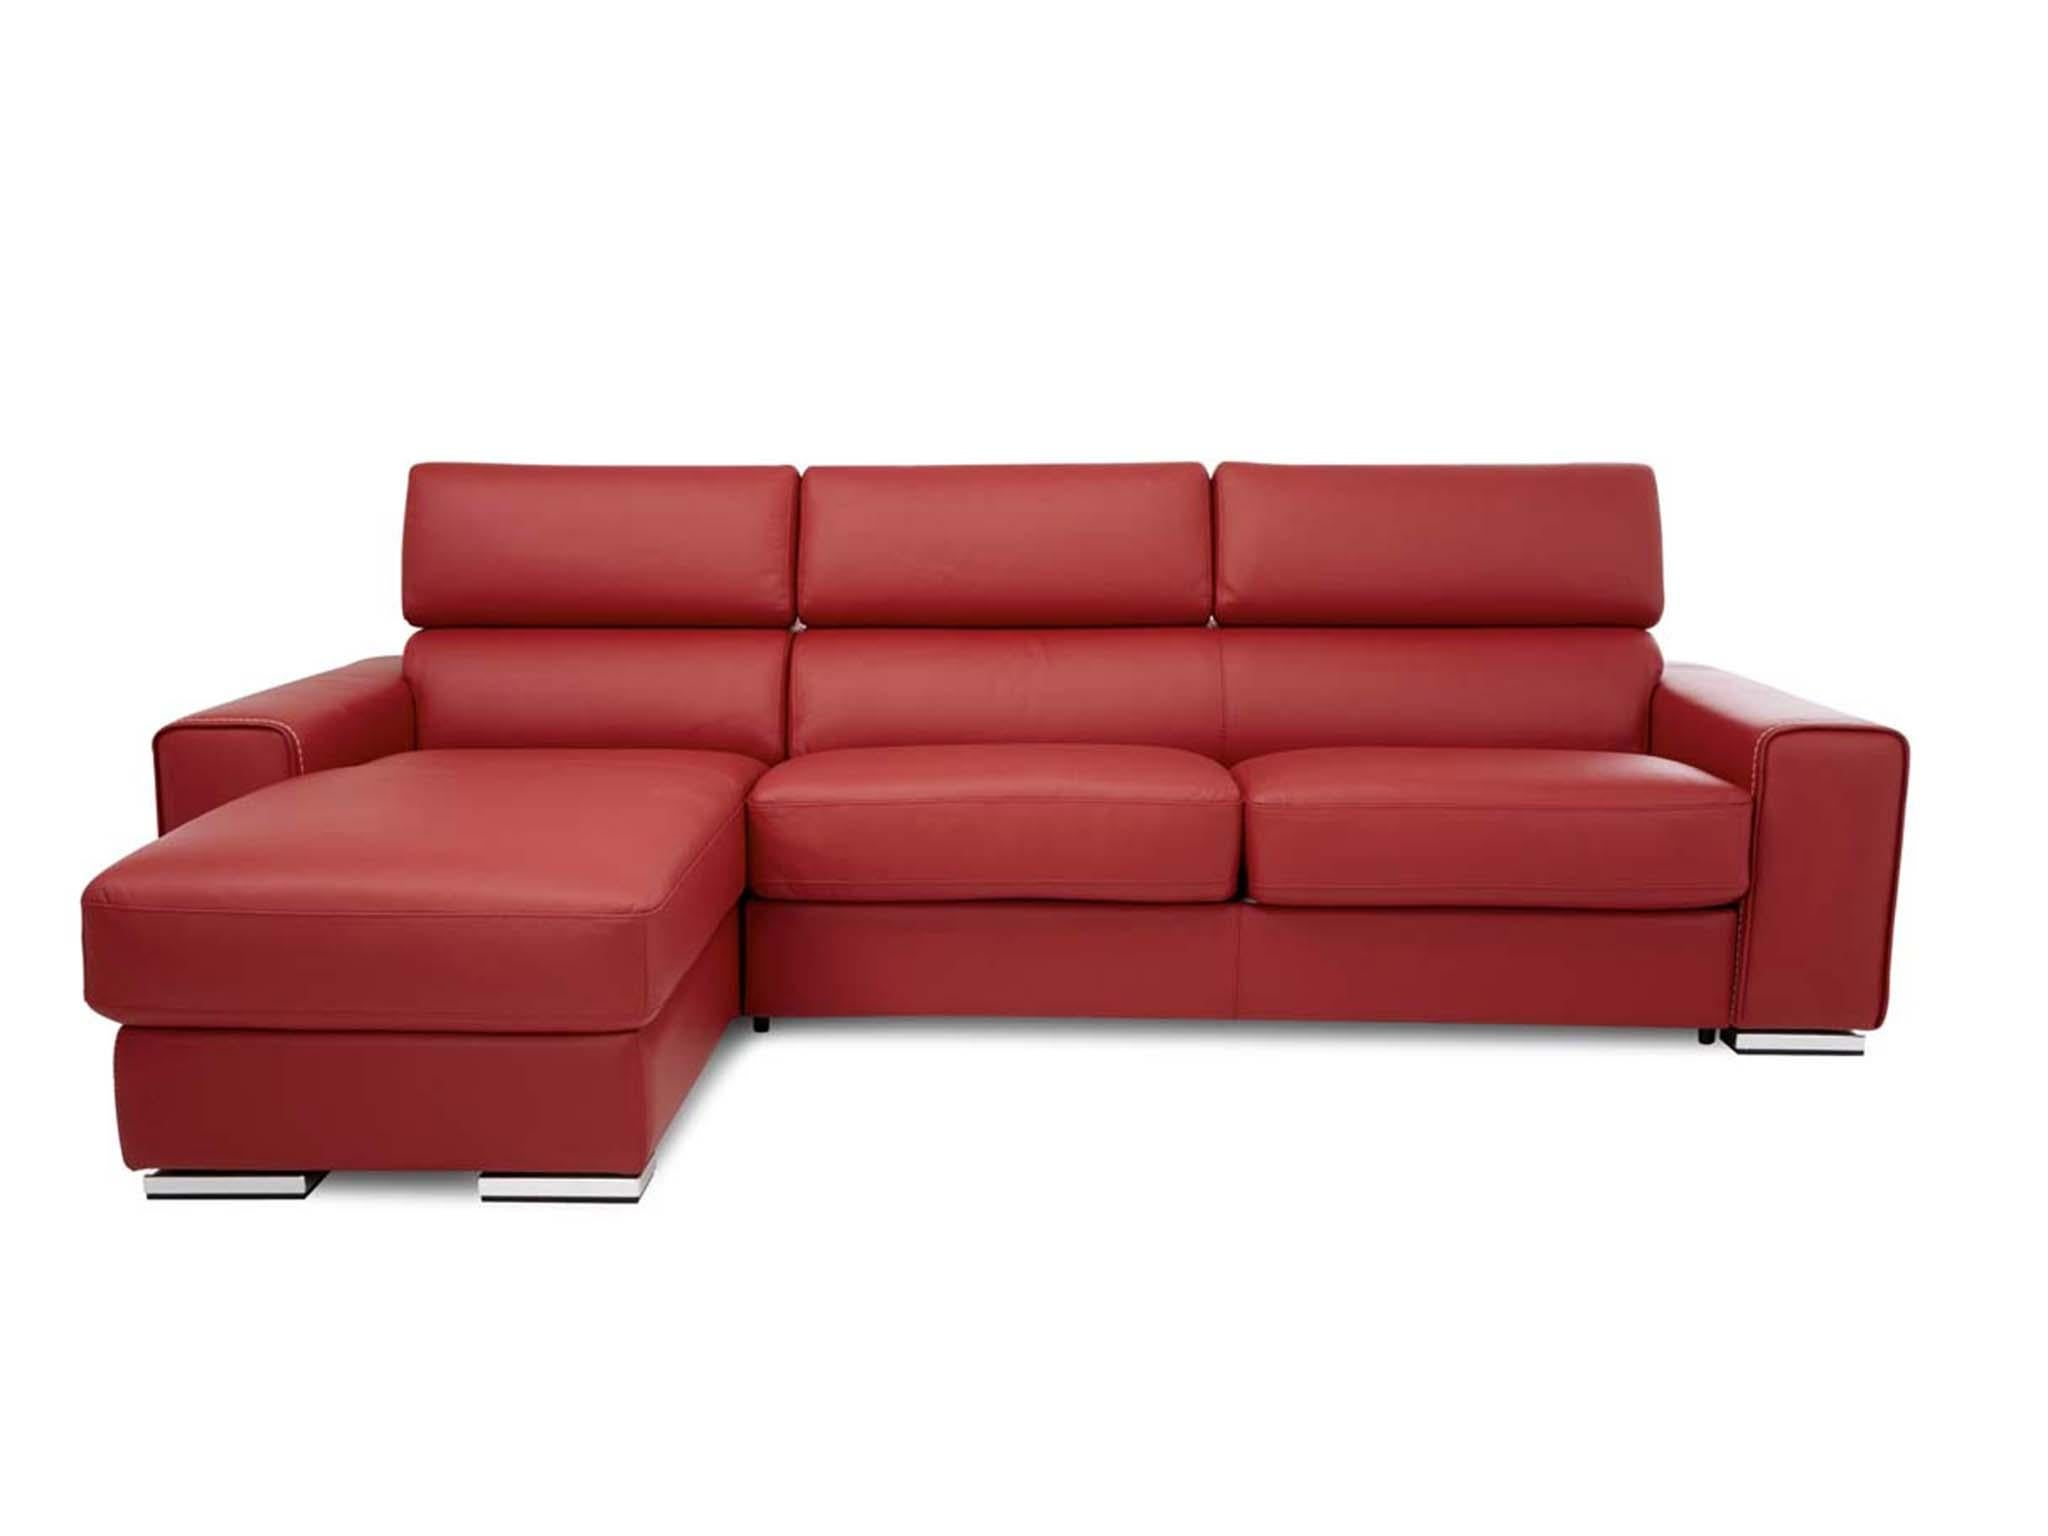 8 Best Sofas With Storage The Independent